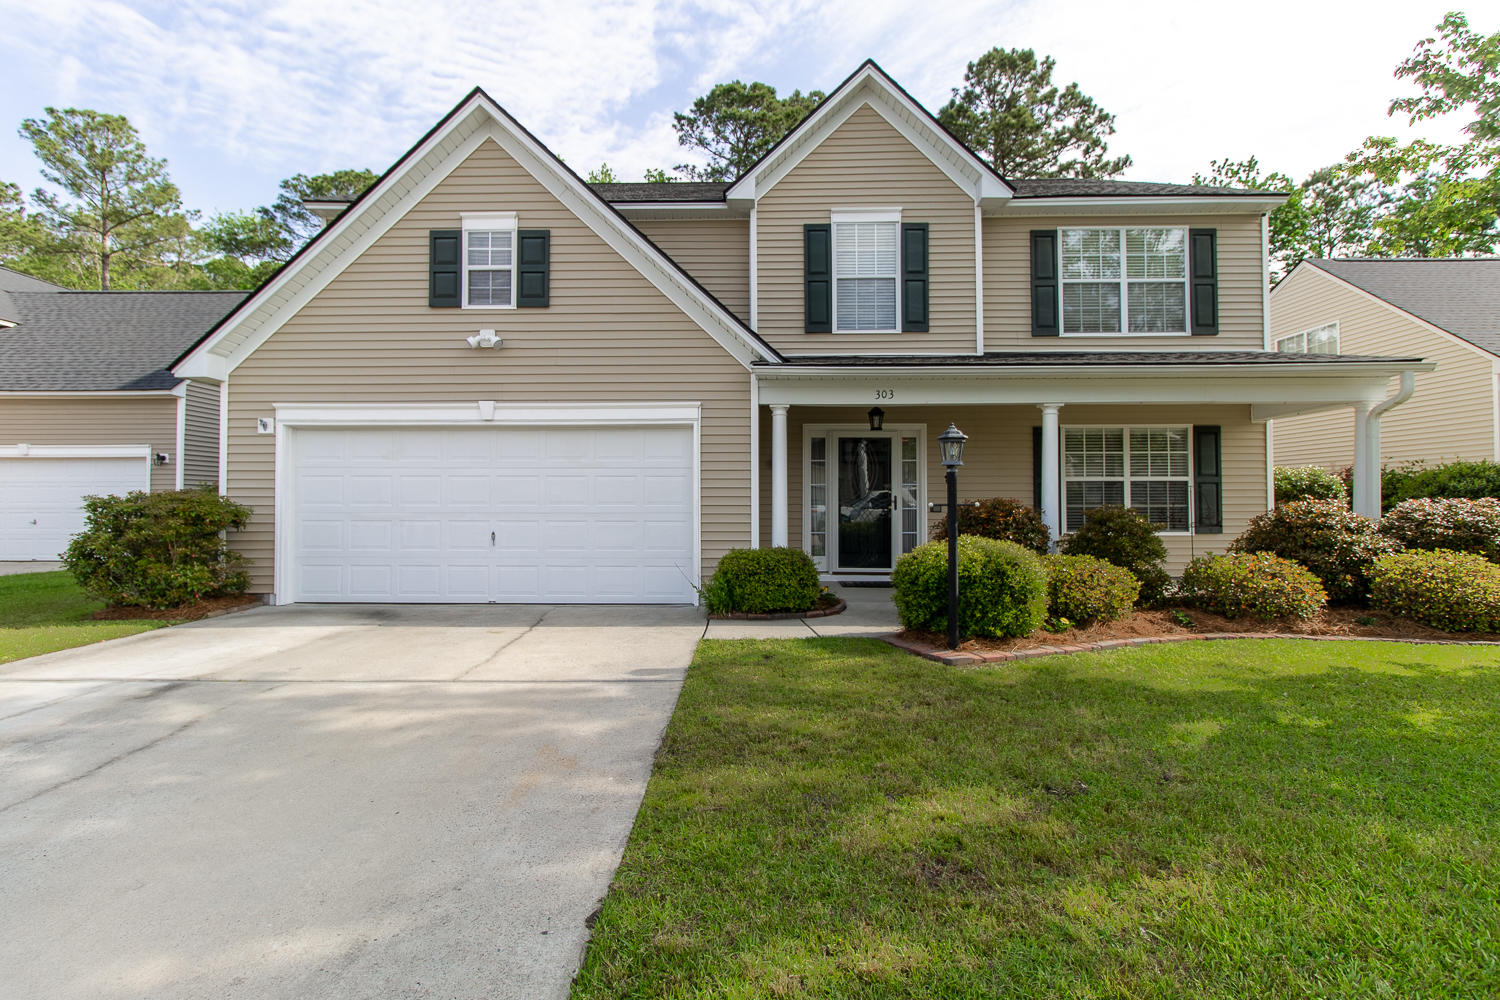 303 Dunning Road Summerville, Sc 29483